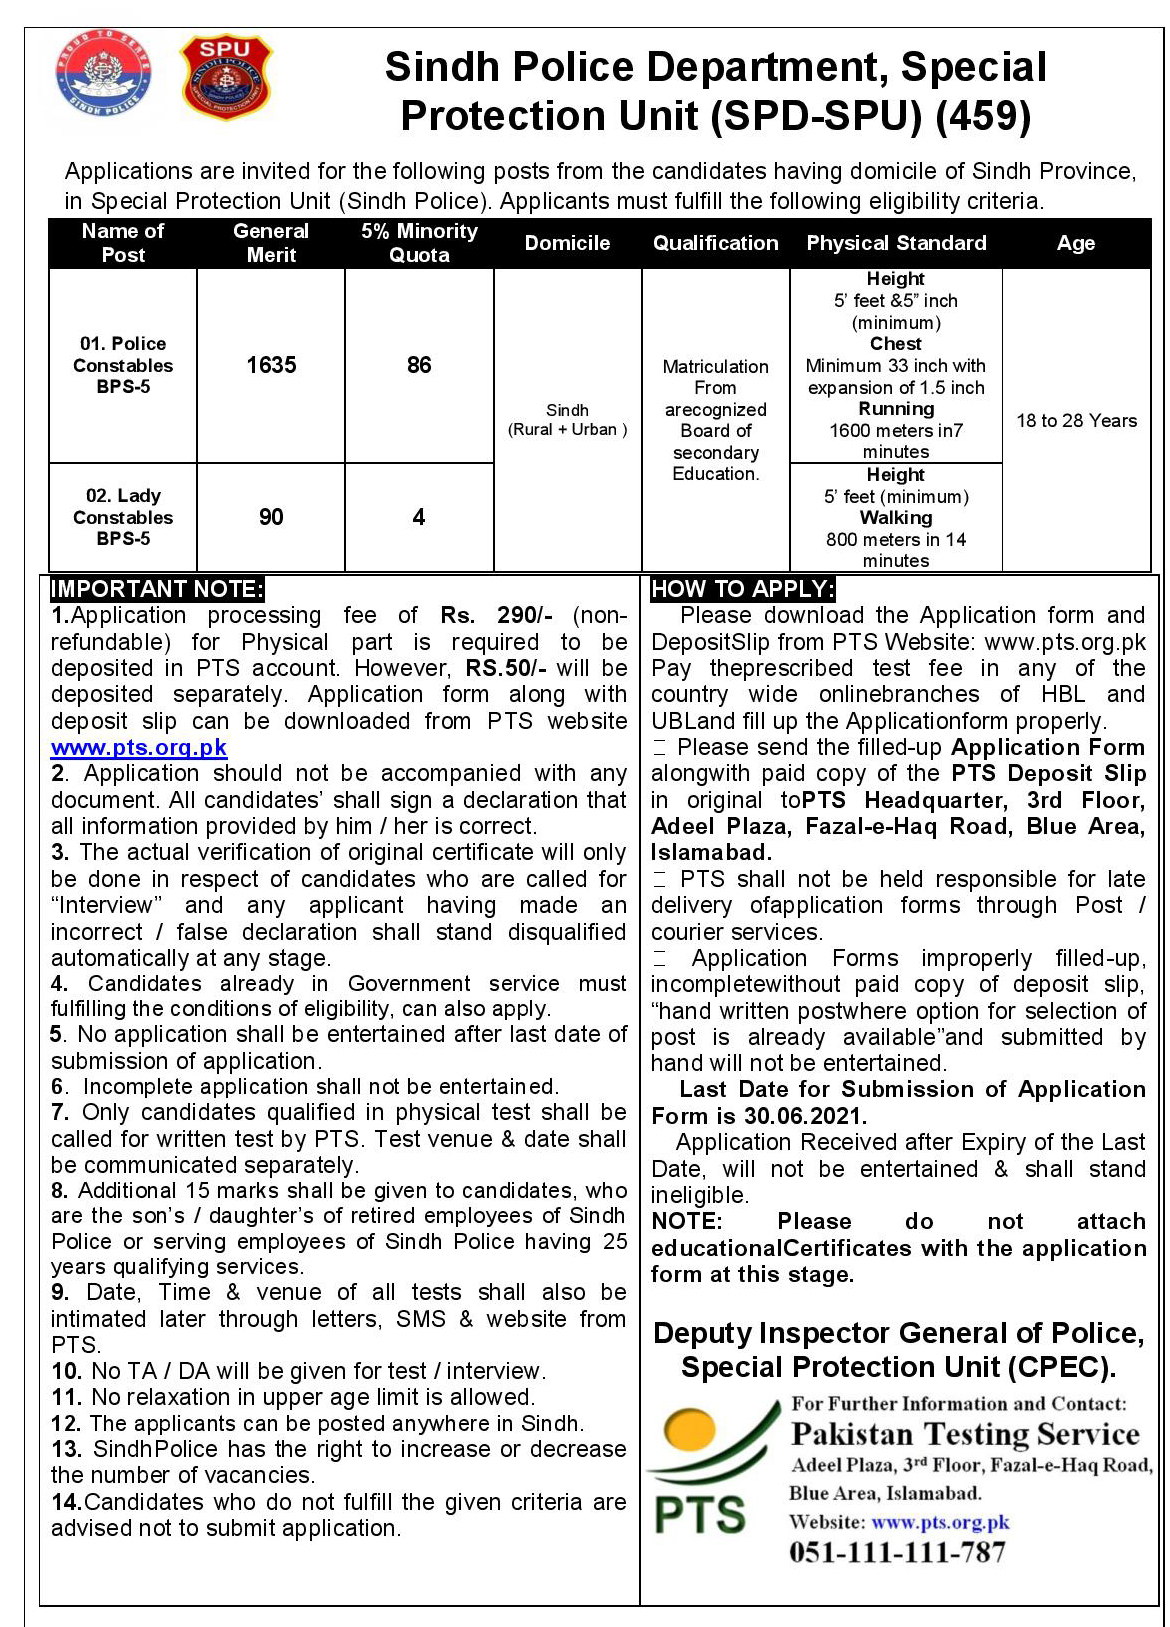 Sindh-Police-Jobs-2021-Special-Protection-Unit-SPU-for-Constables